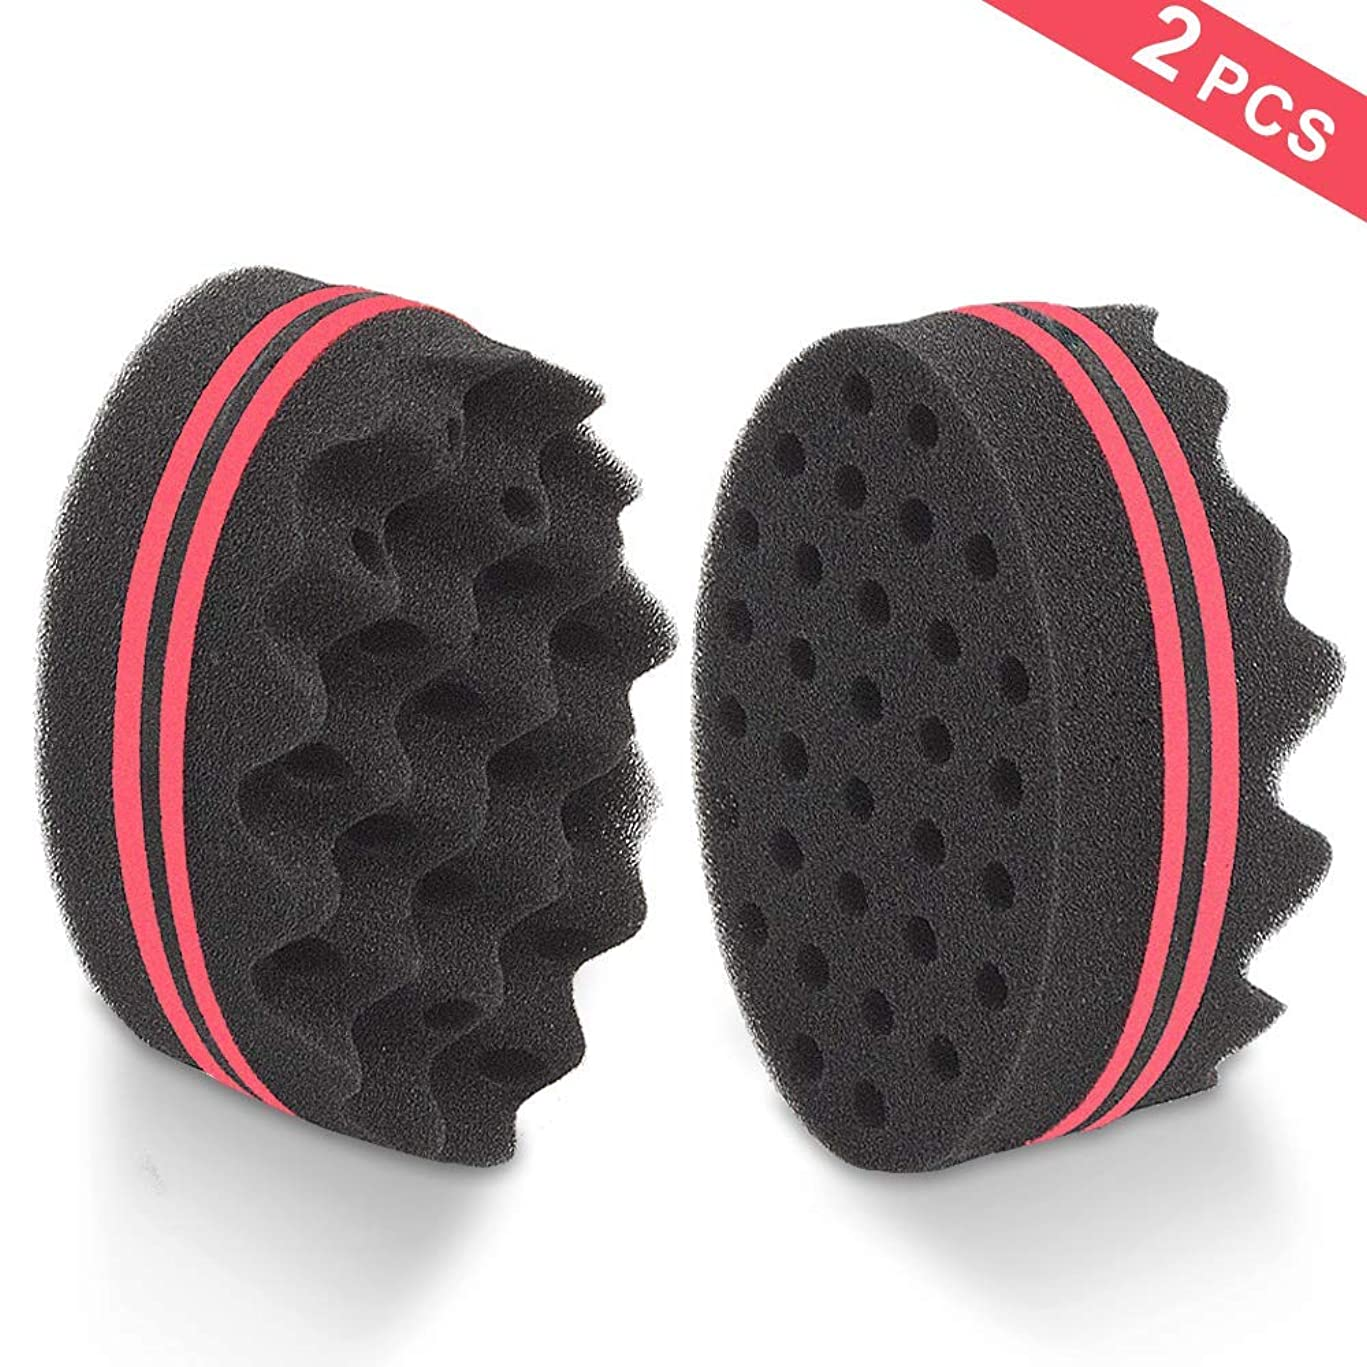 HALLO Black Magic Dual-use Hair Twists Sponge Brush for Coils/Dreads(2 PACK)